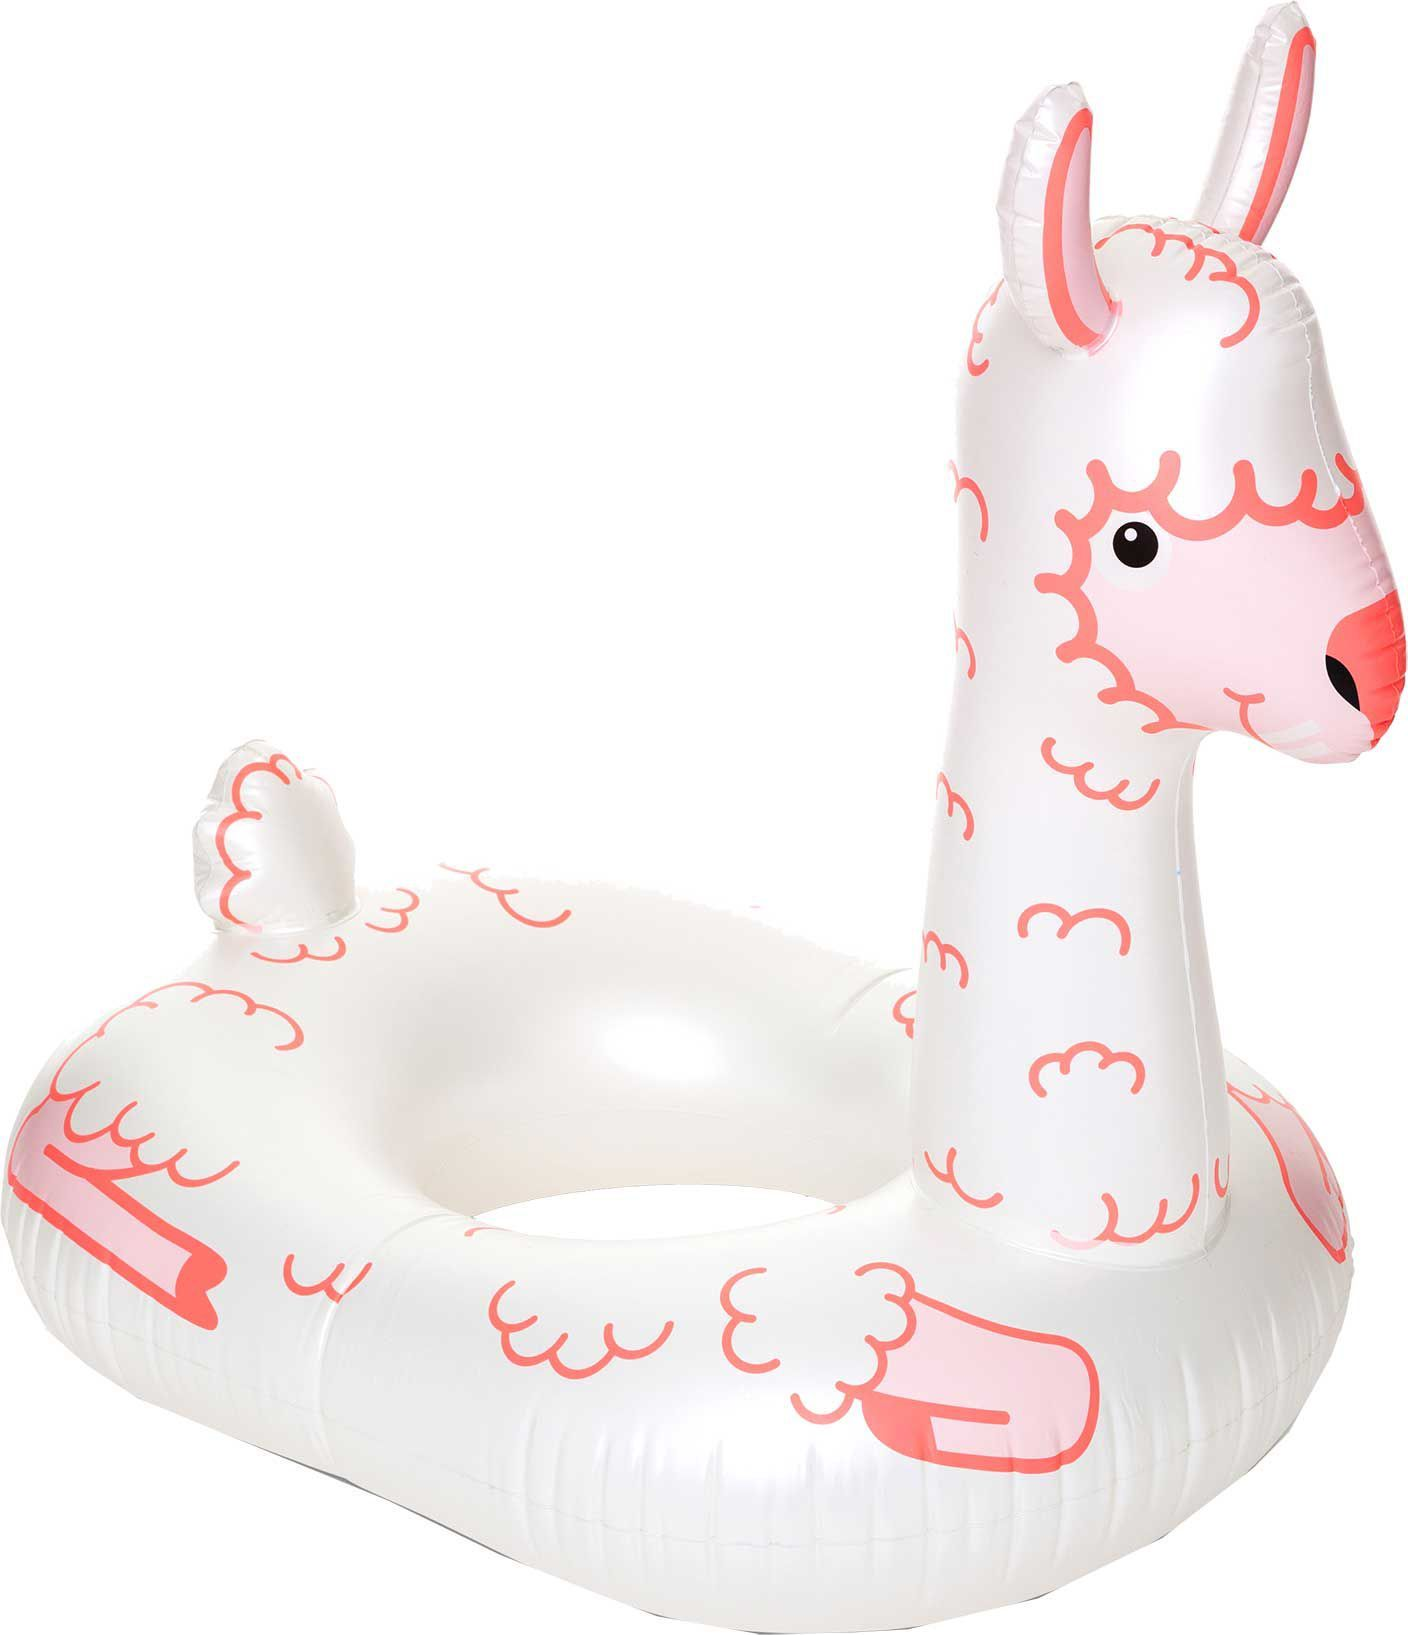 Big Mouth Llama Inflatable Pool Float in 2020 Inflatable